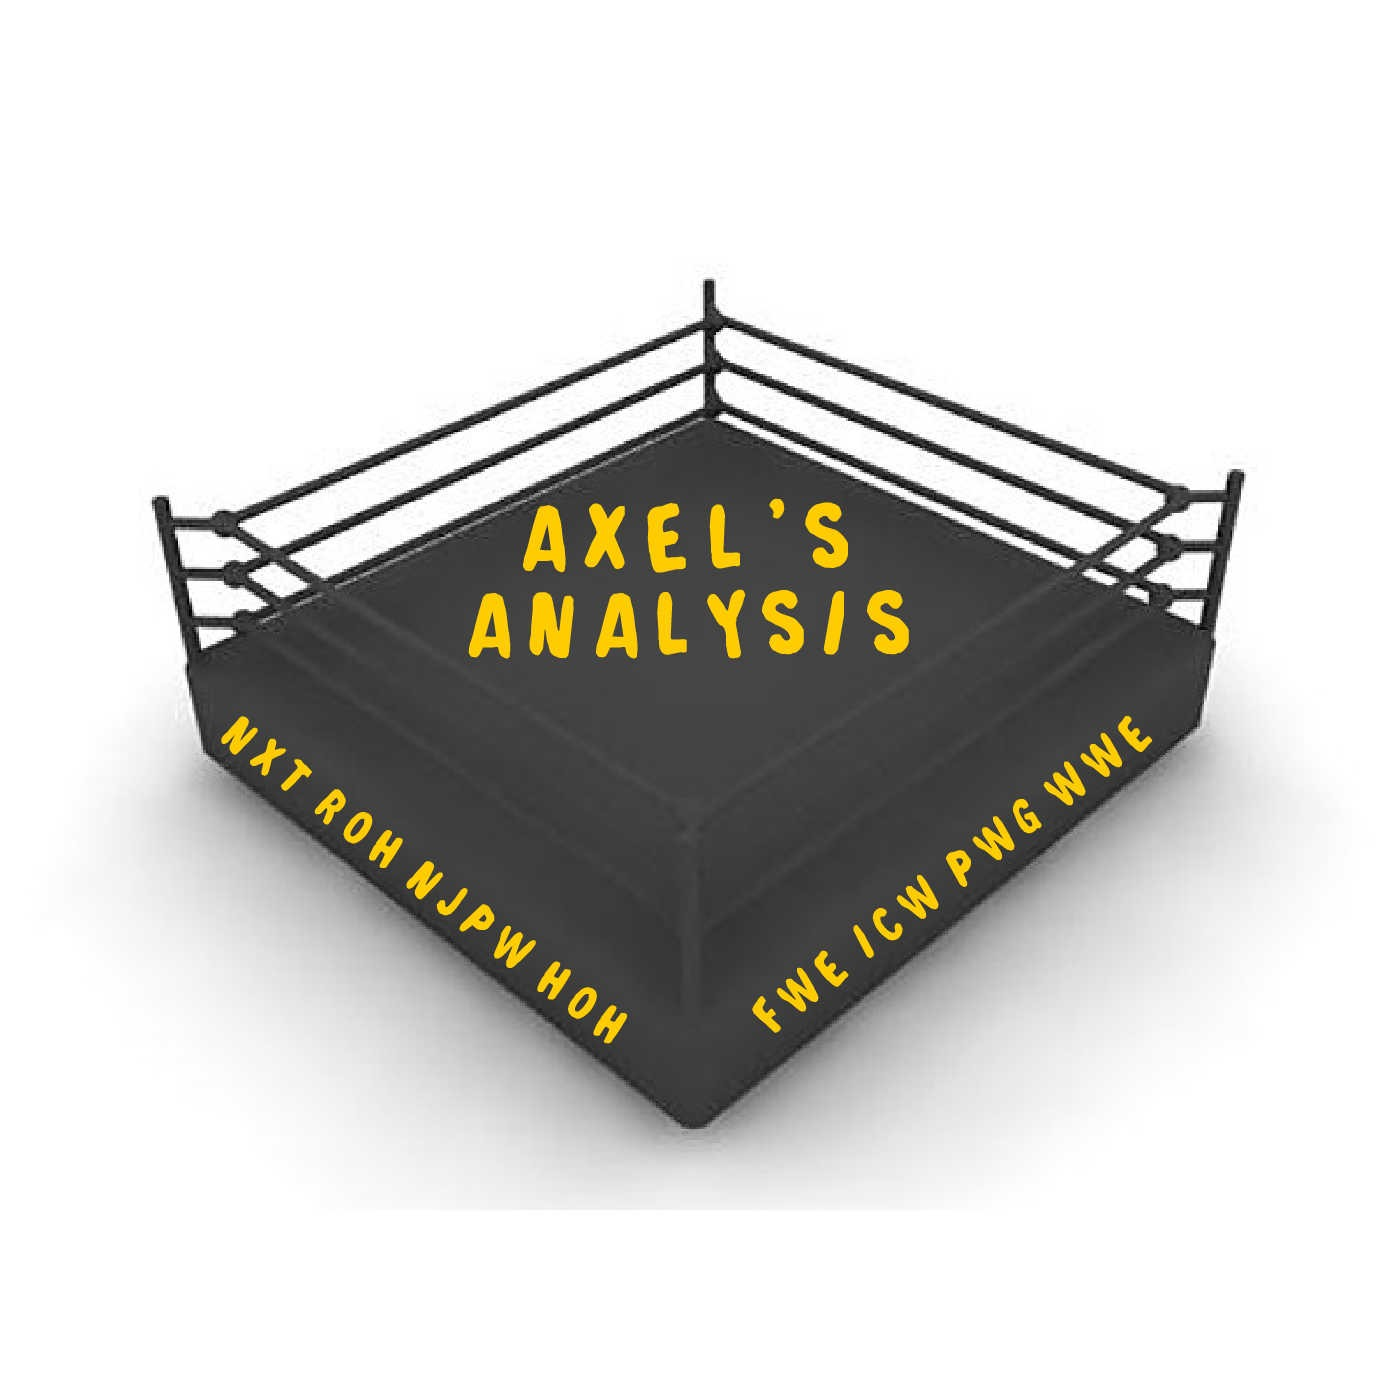 Axel's Wrestling Analysis